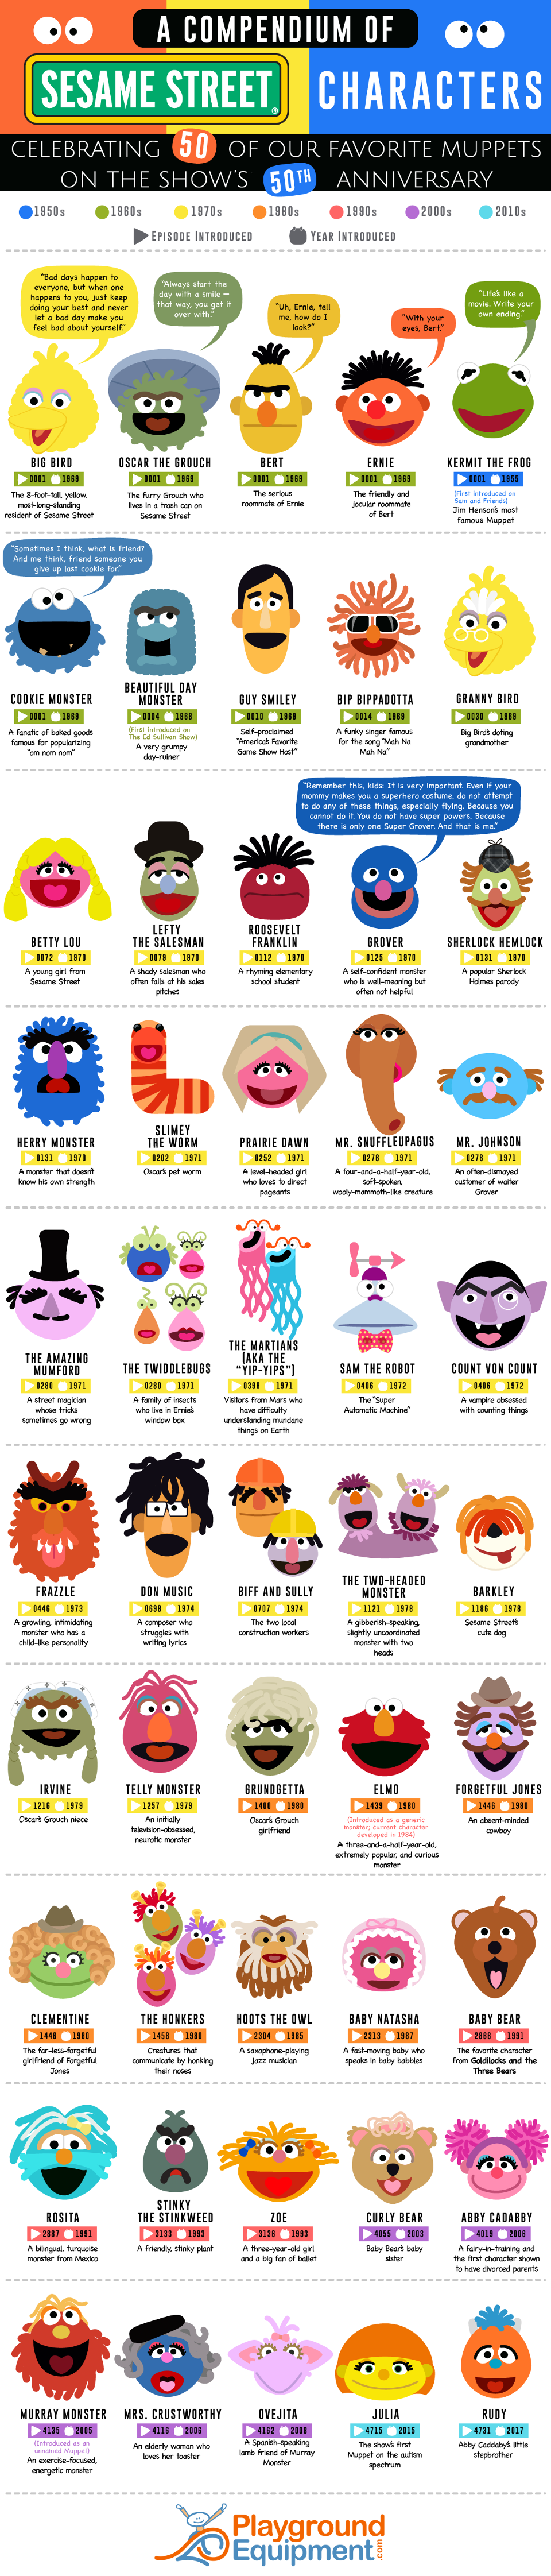 A Compendium of Sesame Street Characters #infographic